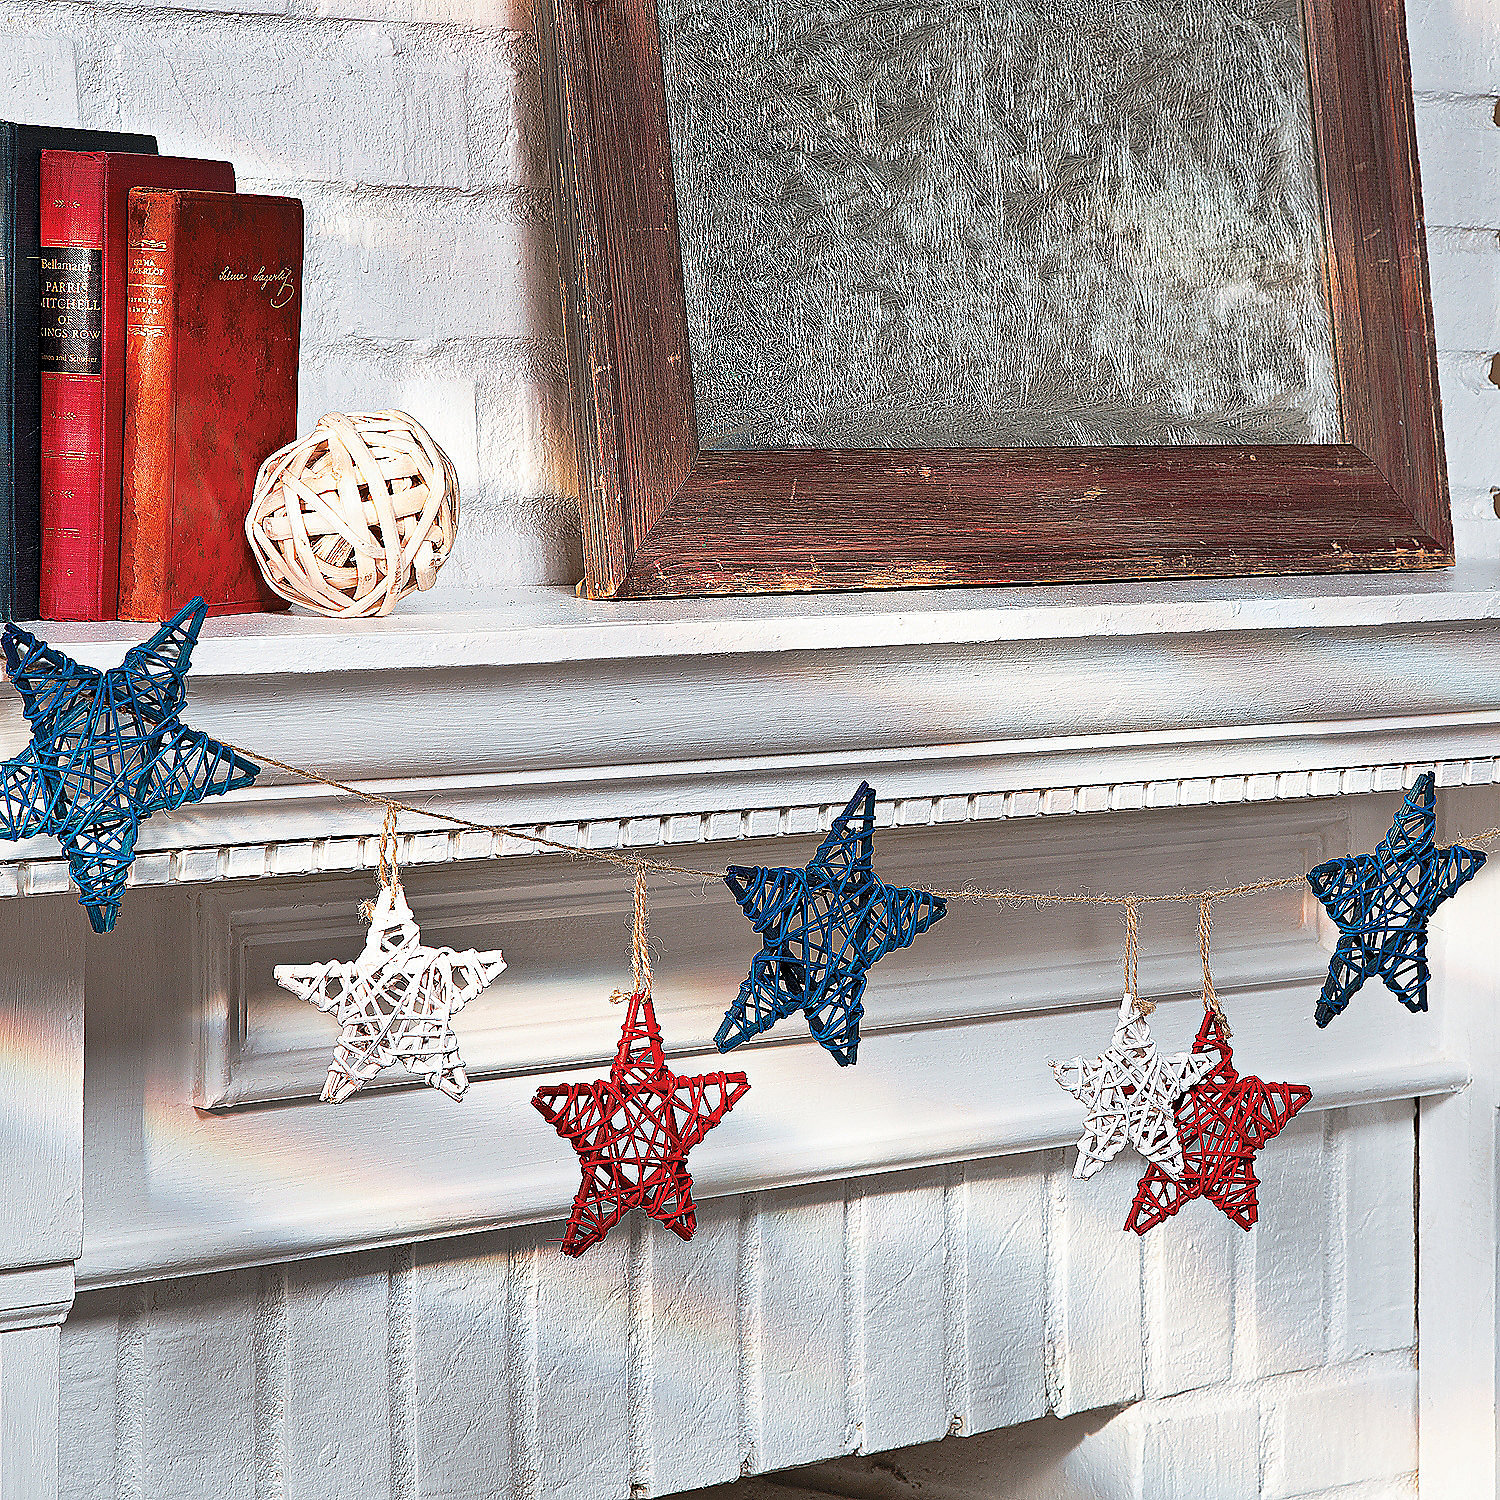 Star Decorations For Home: Red, White & Blue Star Garland, Decorative Accessories